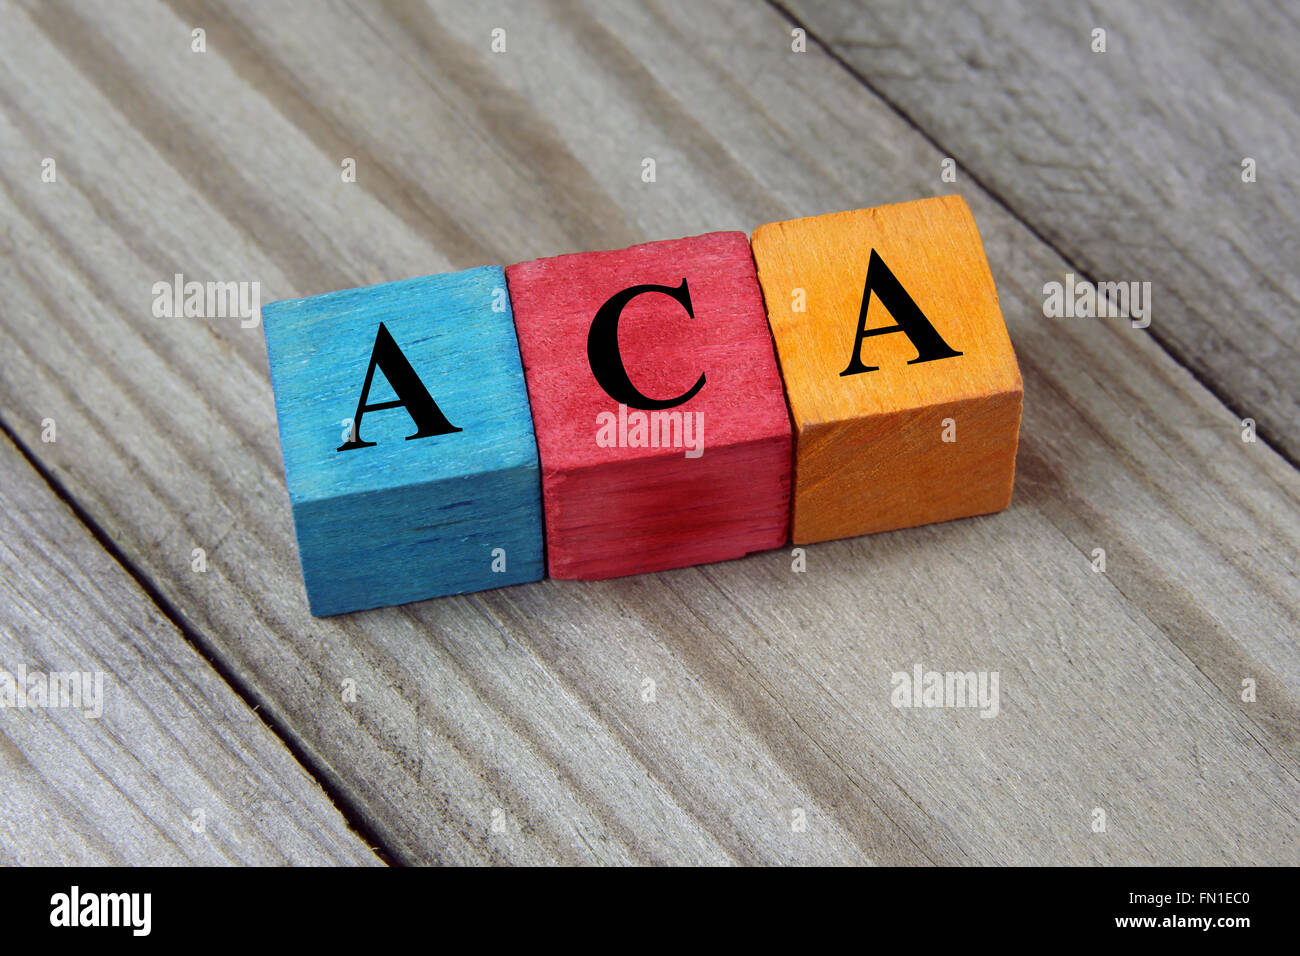 ACA (Affordable Care Act) acronym on colorful wooden cubes - Stock Image